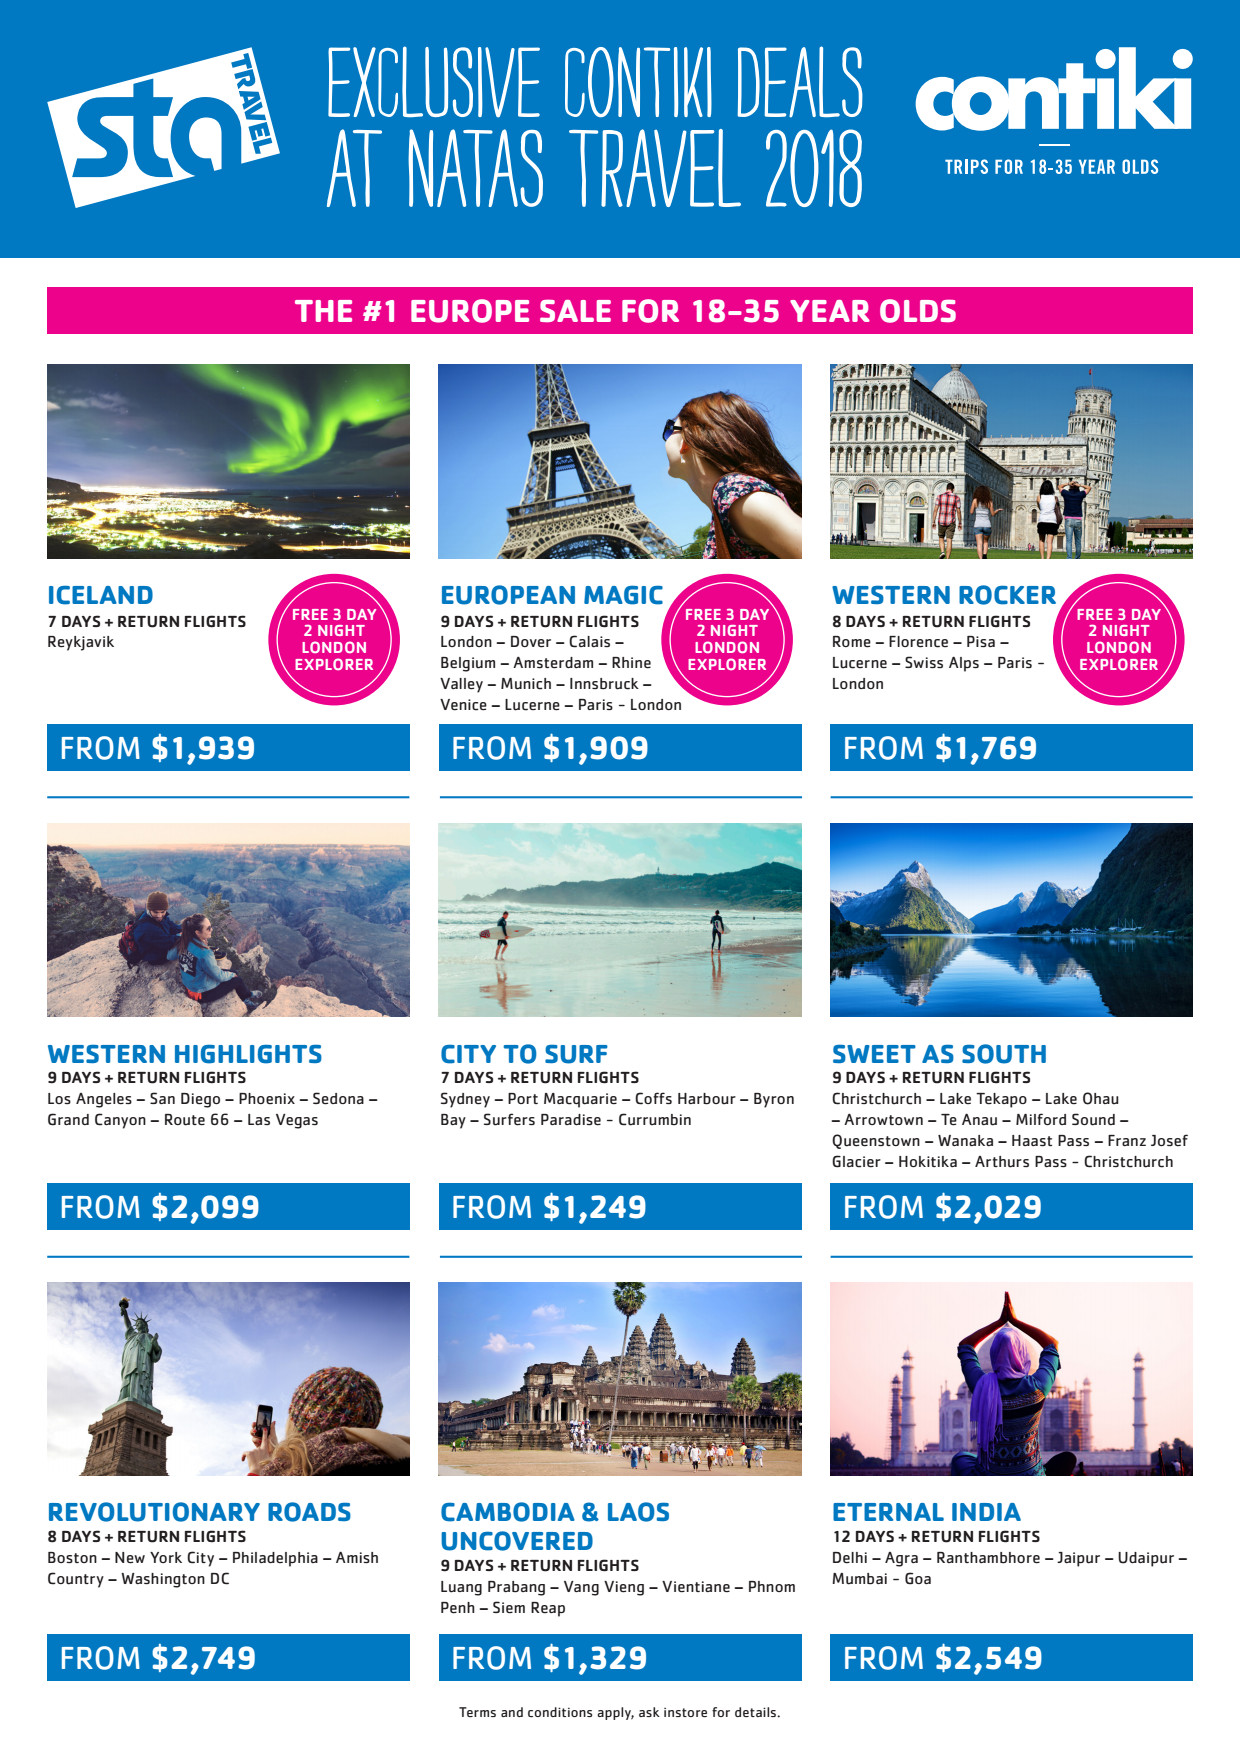 STA Travel For Less. Our coupon hunters want to make sure you get the stuff you want without emptying your pockets. Click the button to check STA Travel's deals page for codes & discounts, and don't forget to sign up for their email list to get deals directly to your inbox. Look at you, smart shopper!